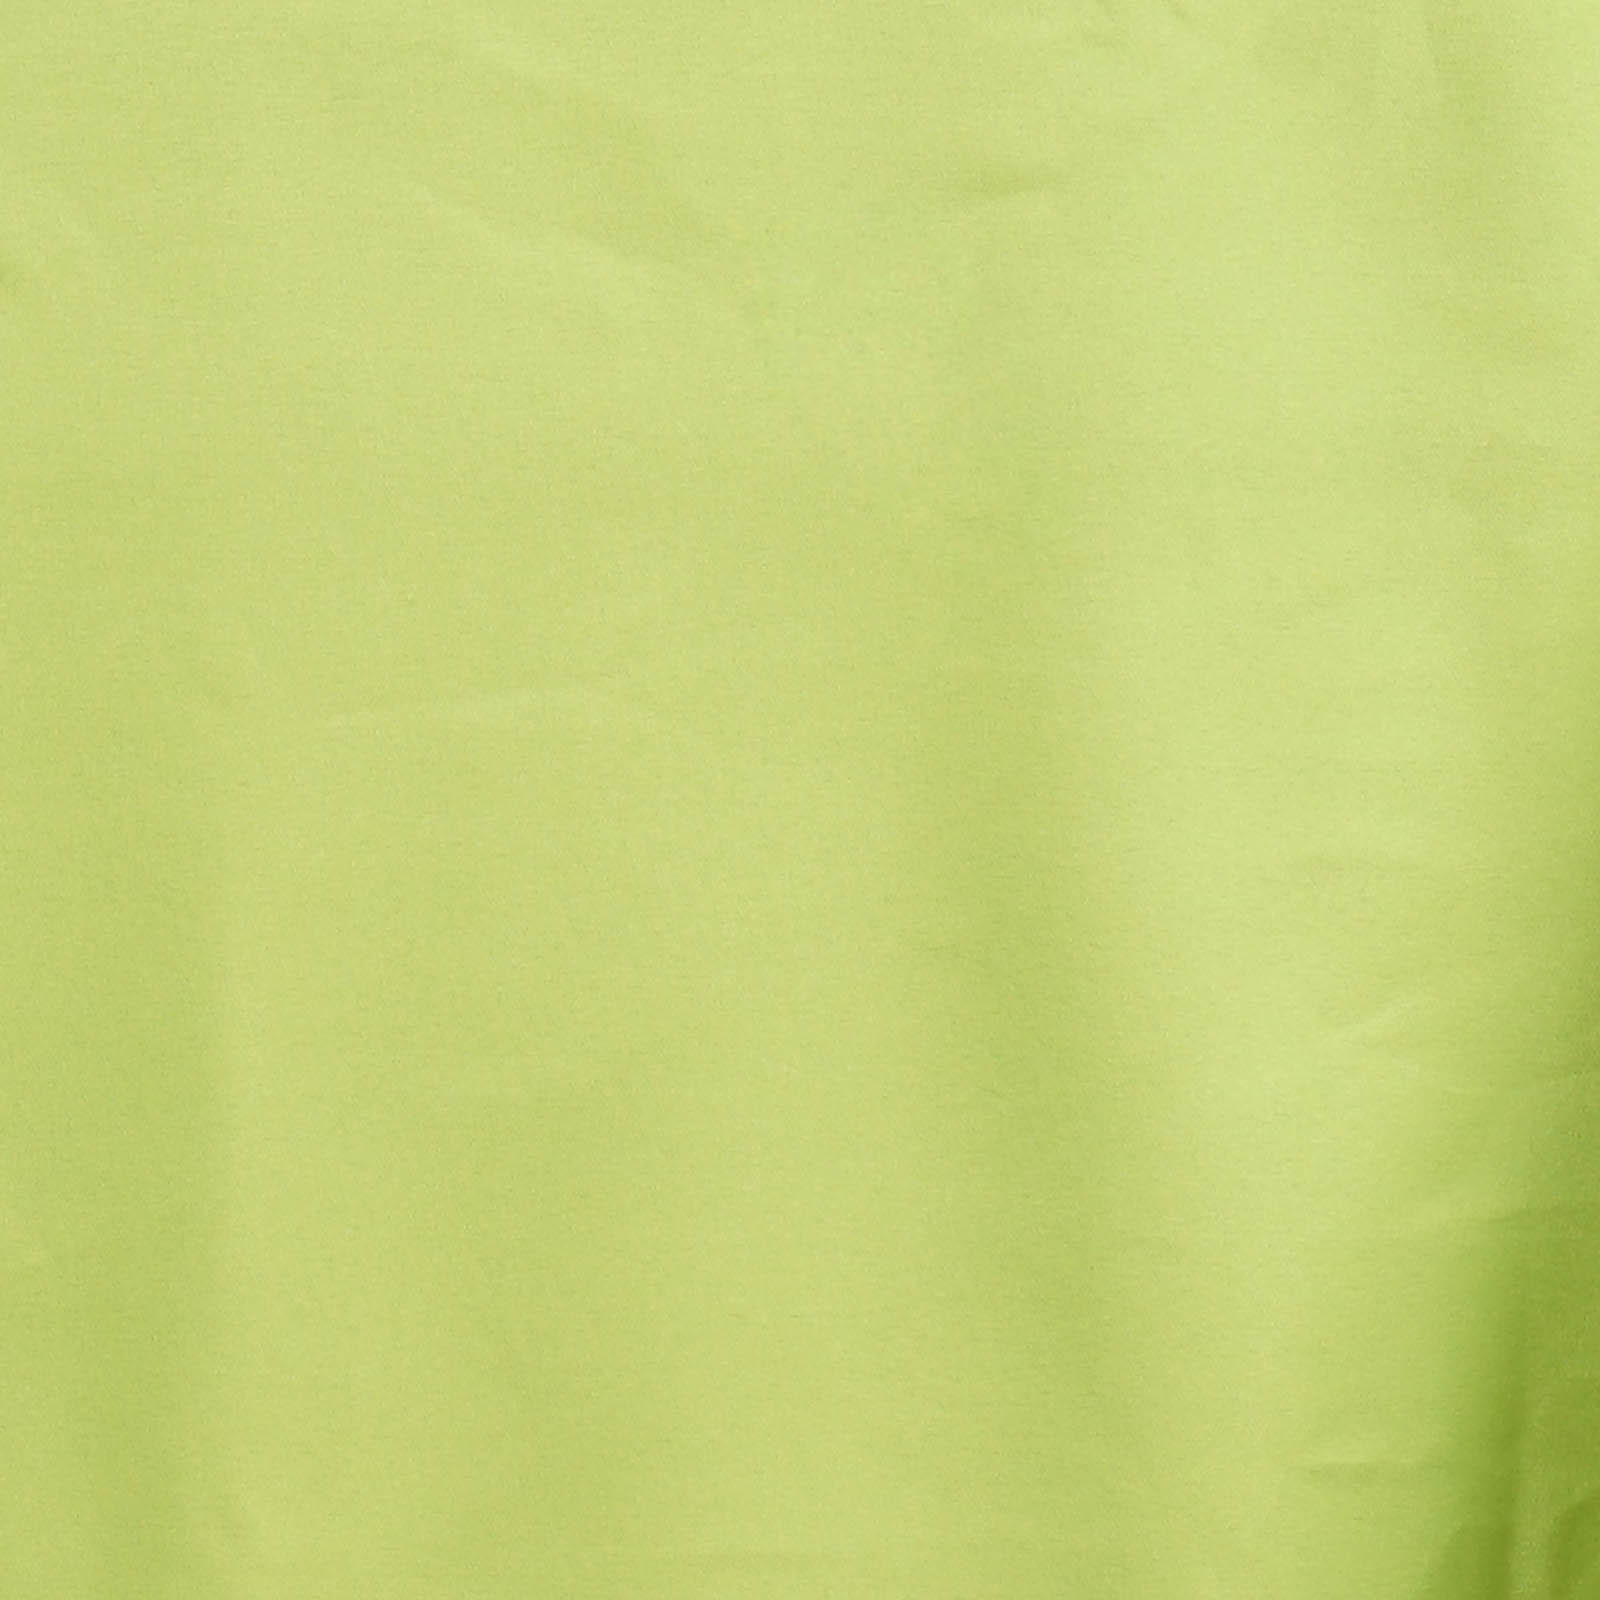 90x132-034-Polyester-Rectangle-Tablecloths-For-Wedding-Party-Banquet-Events thumbnail 40